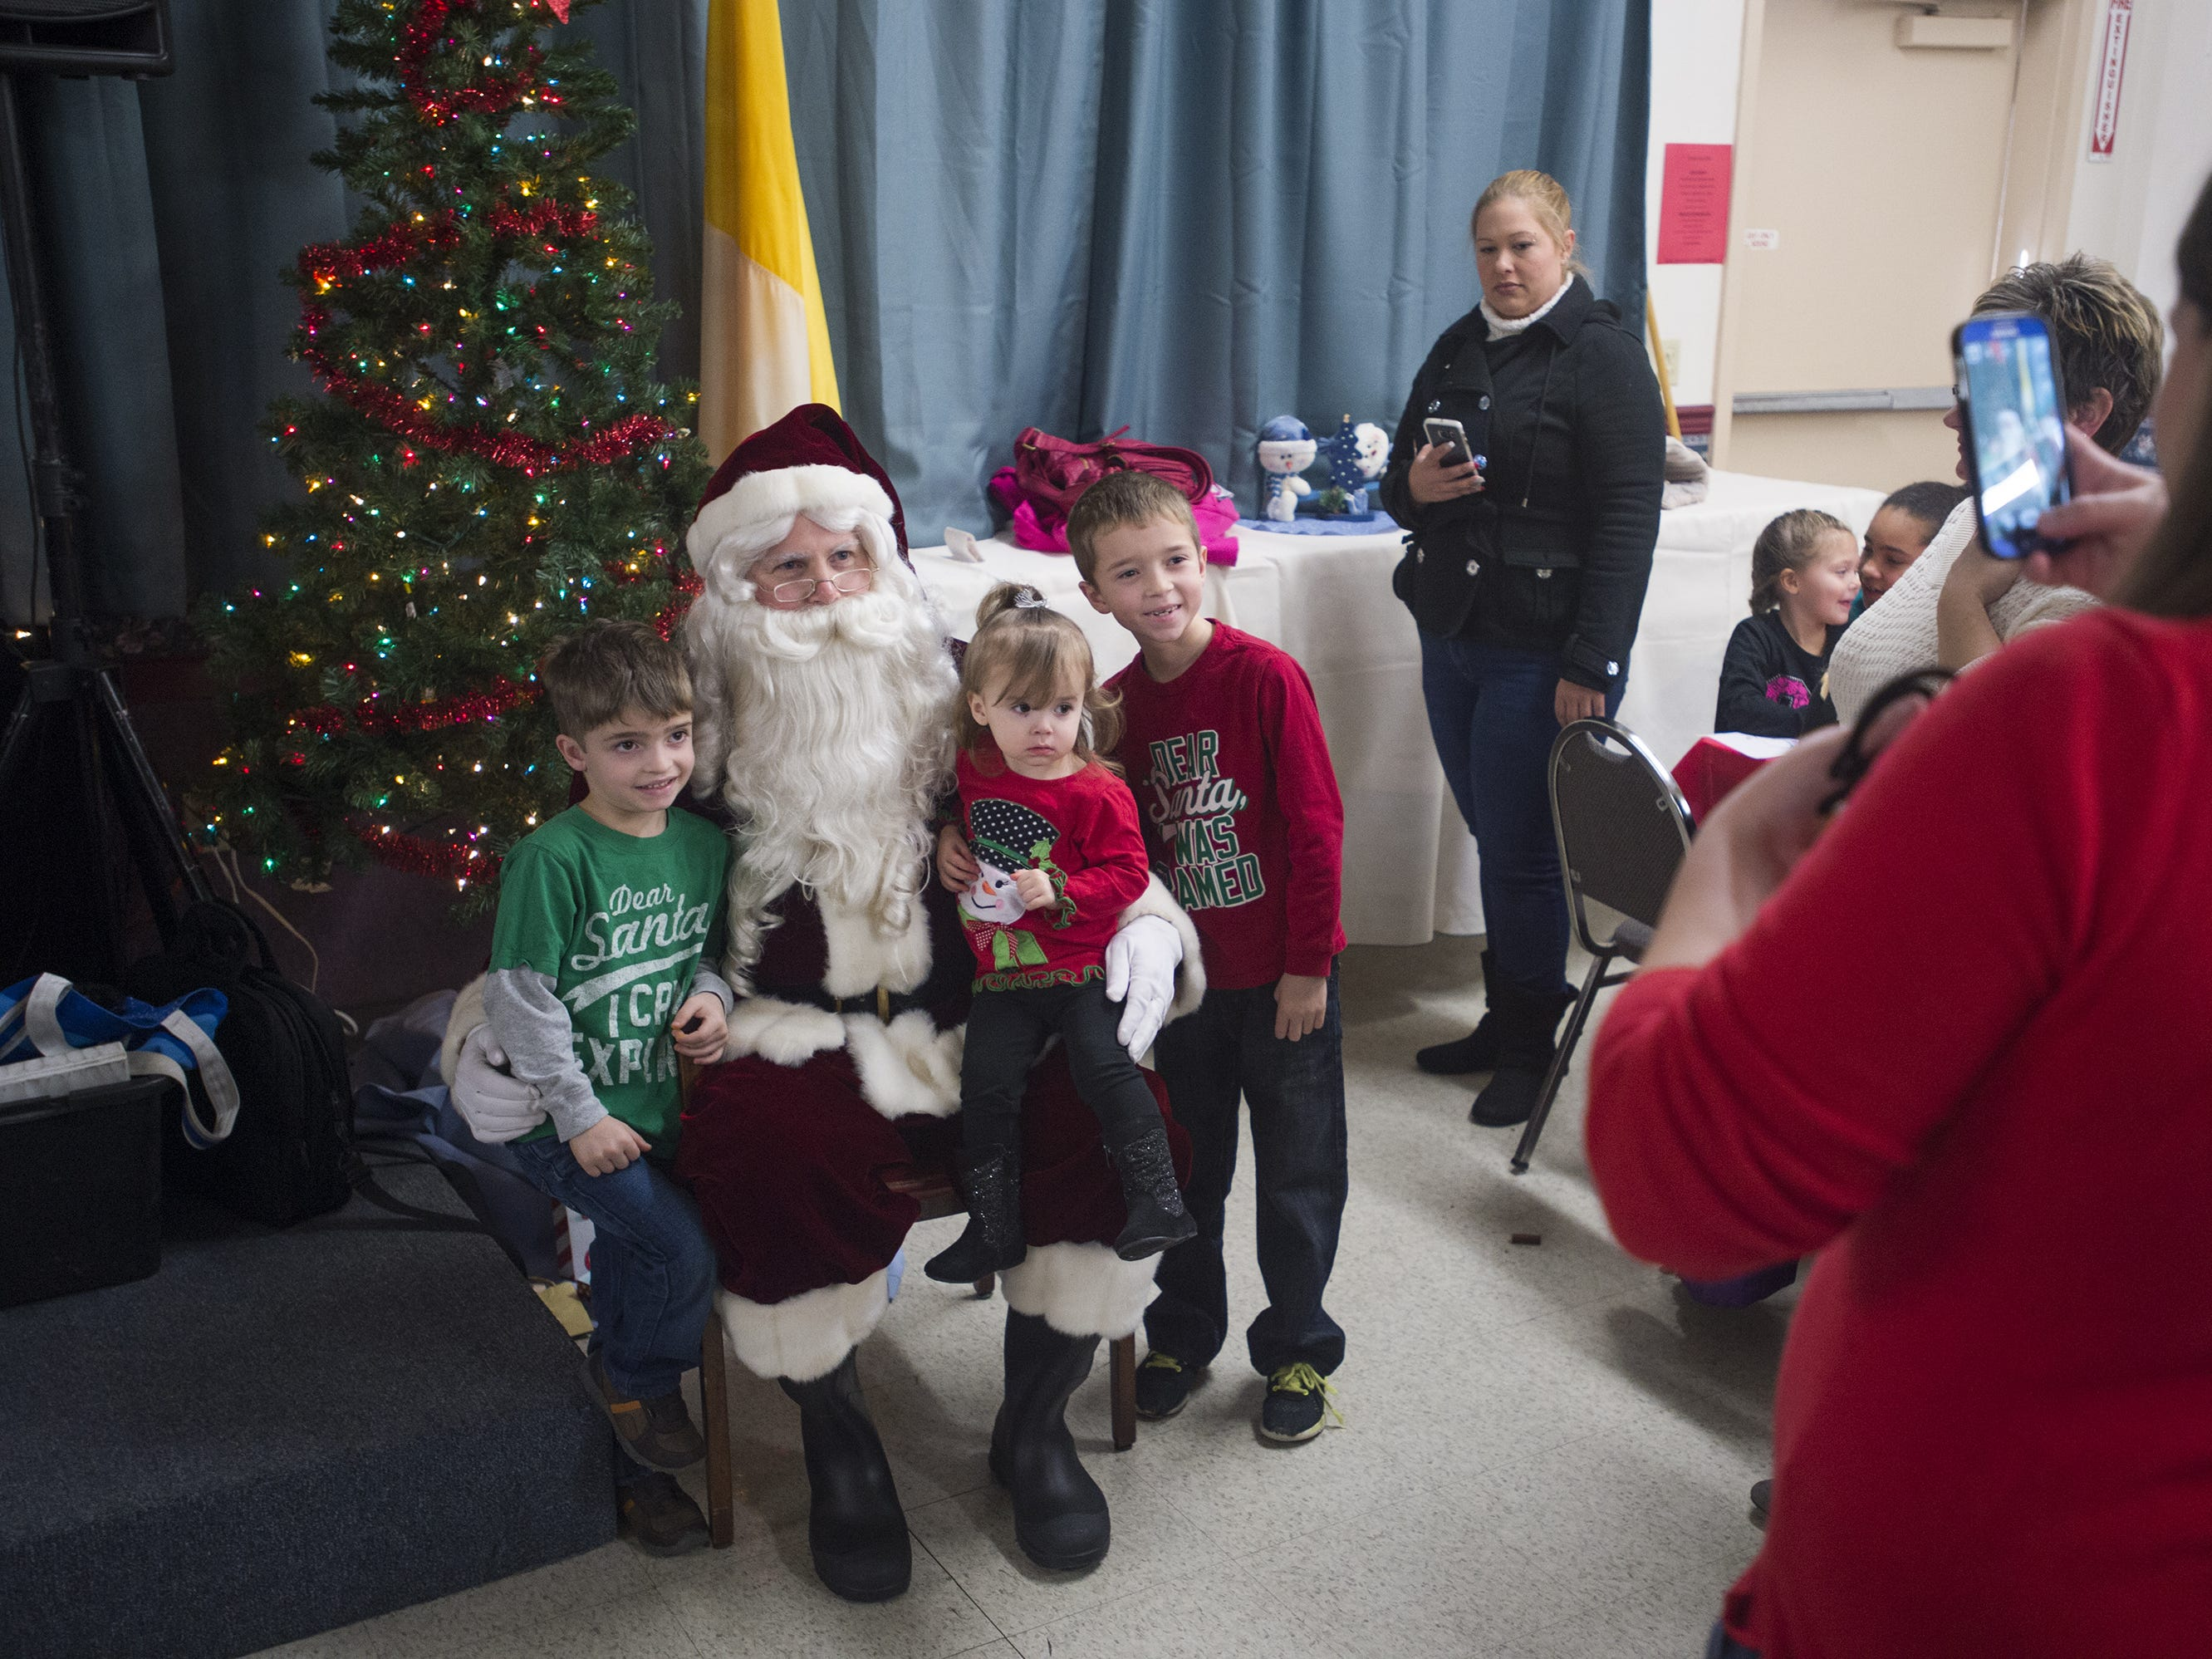 Santa poses for a photo during Animal Adventure's Jungle Bells event in Binghamton in 2015.